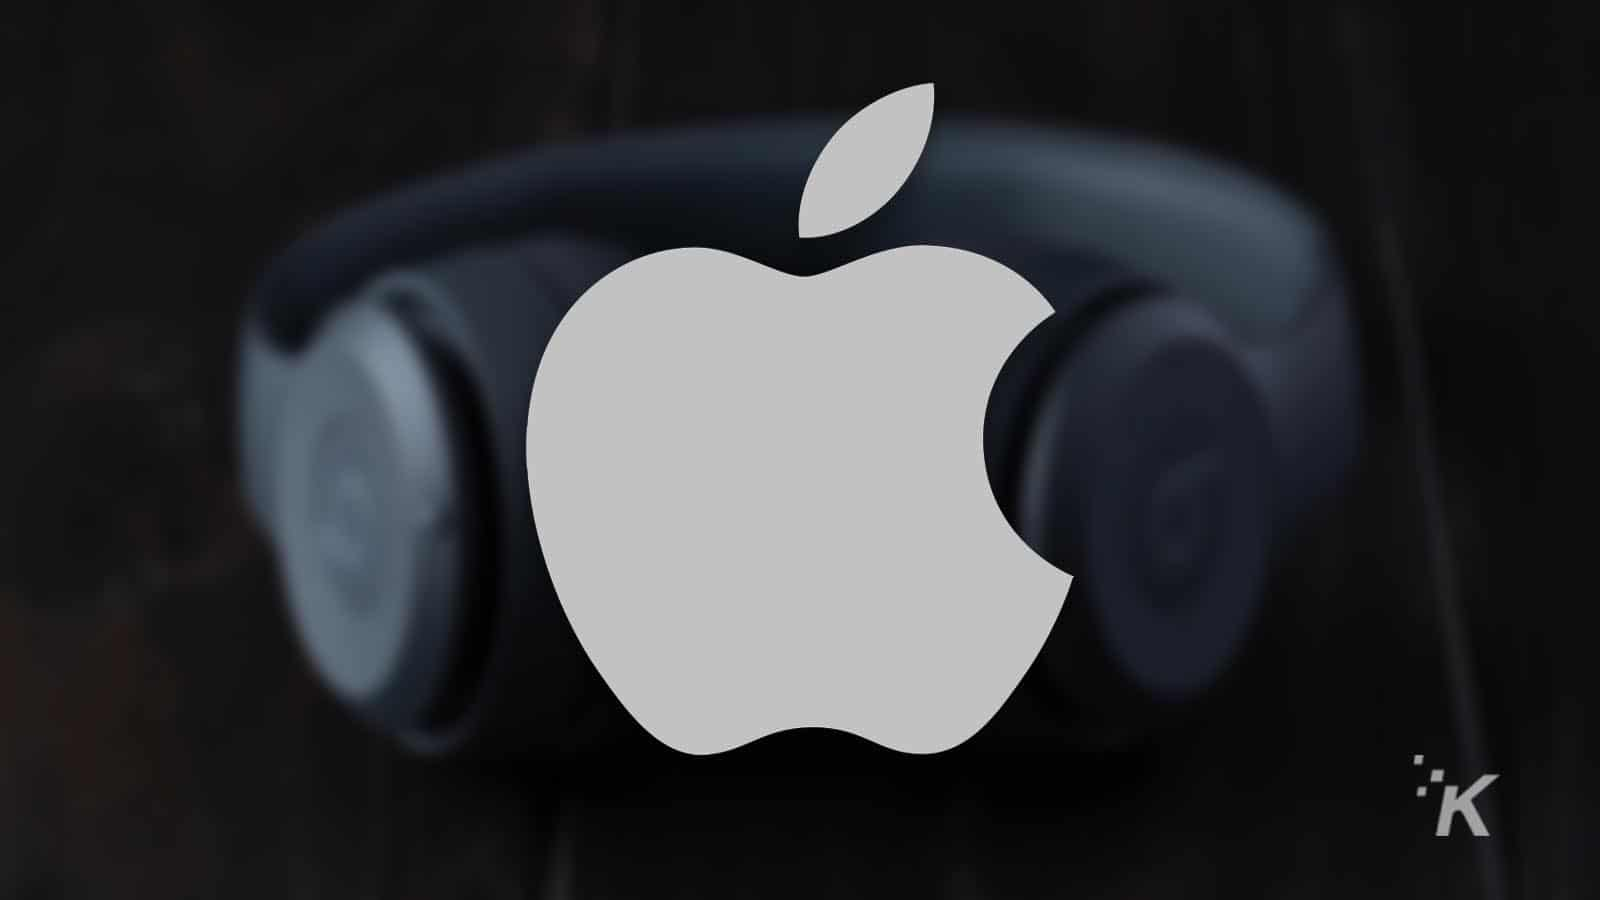 apple logo with headphones in the background for airpods studio